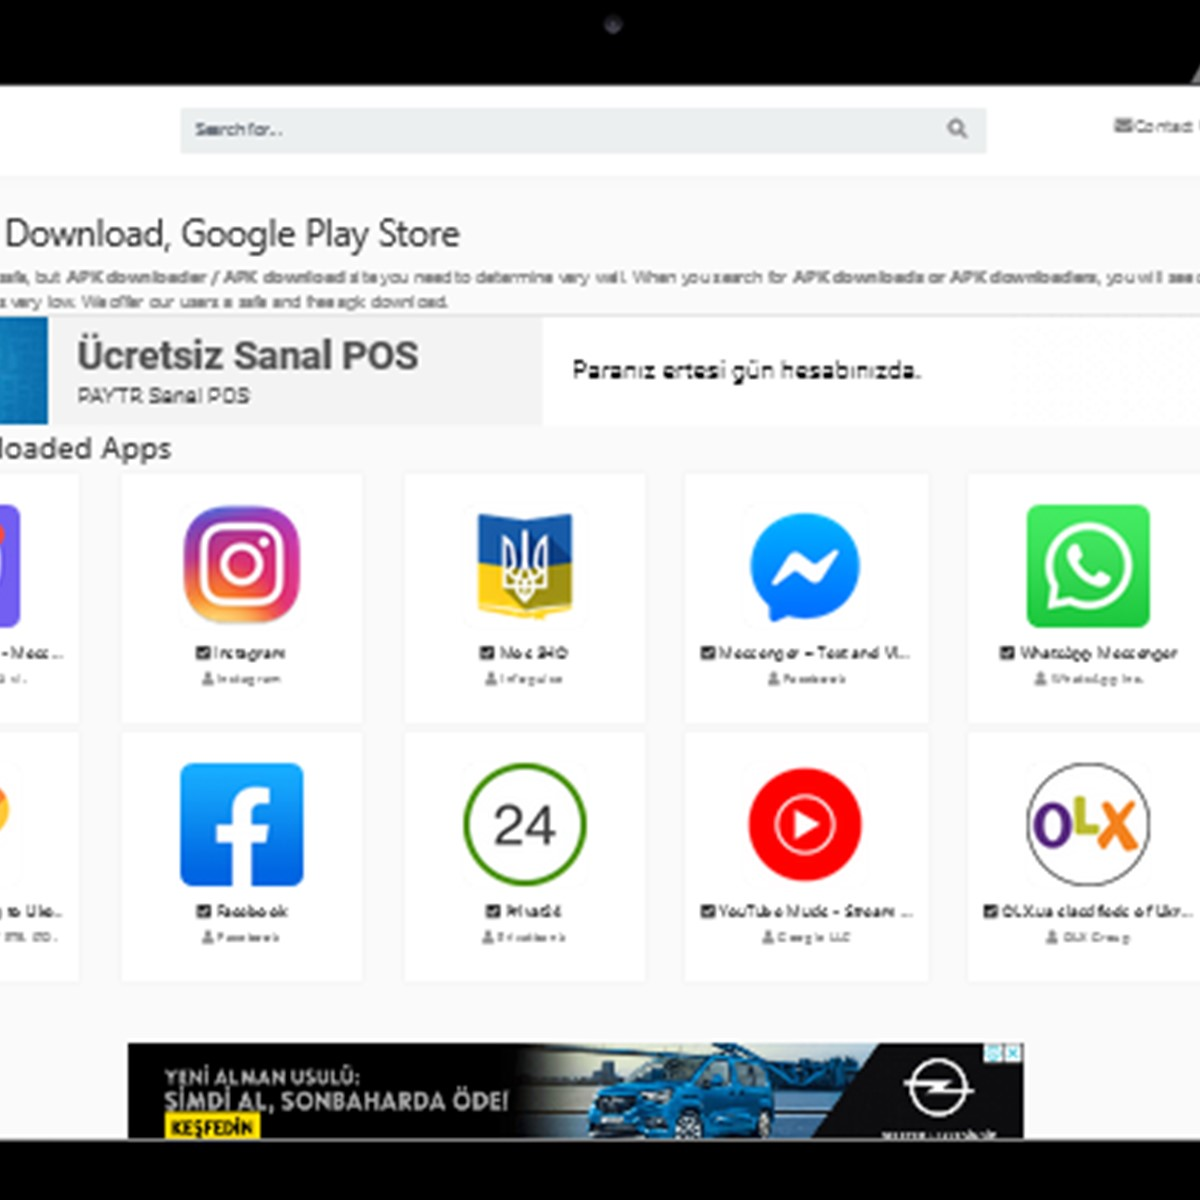 Apk Downloader Alternatives and Similar Websites and Apps